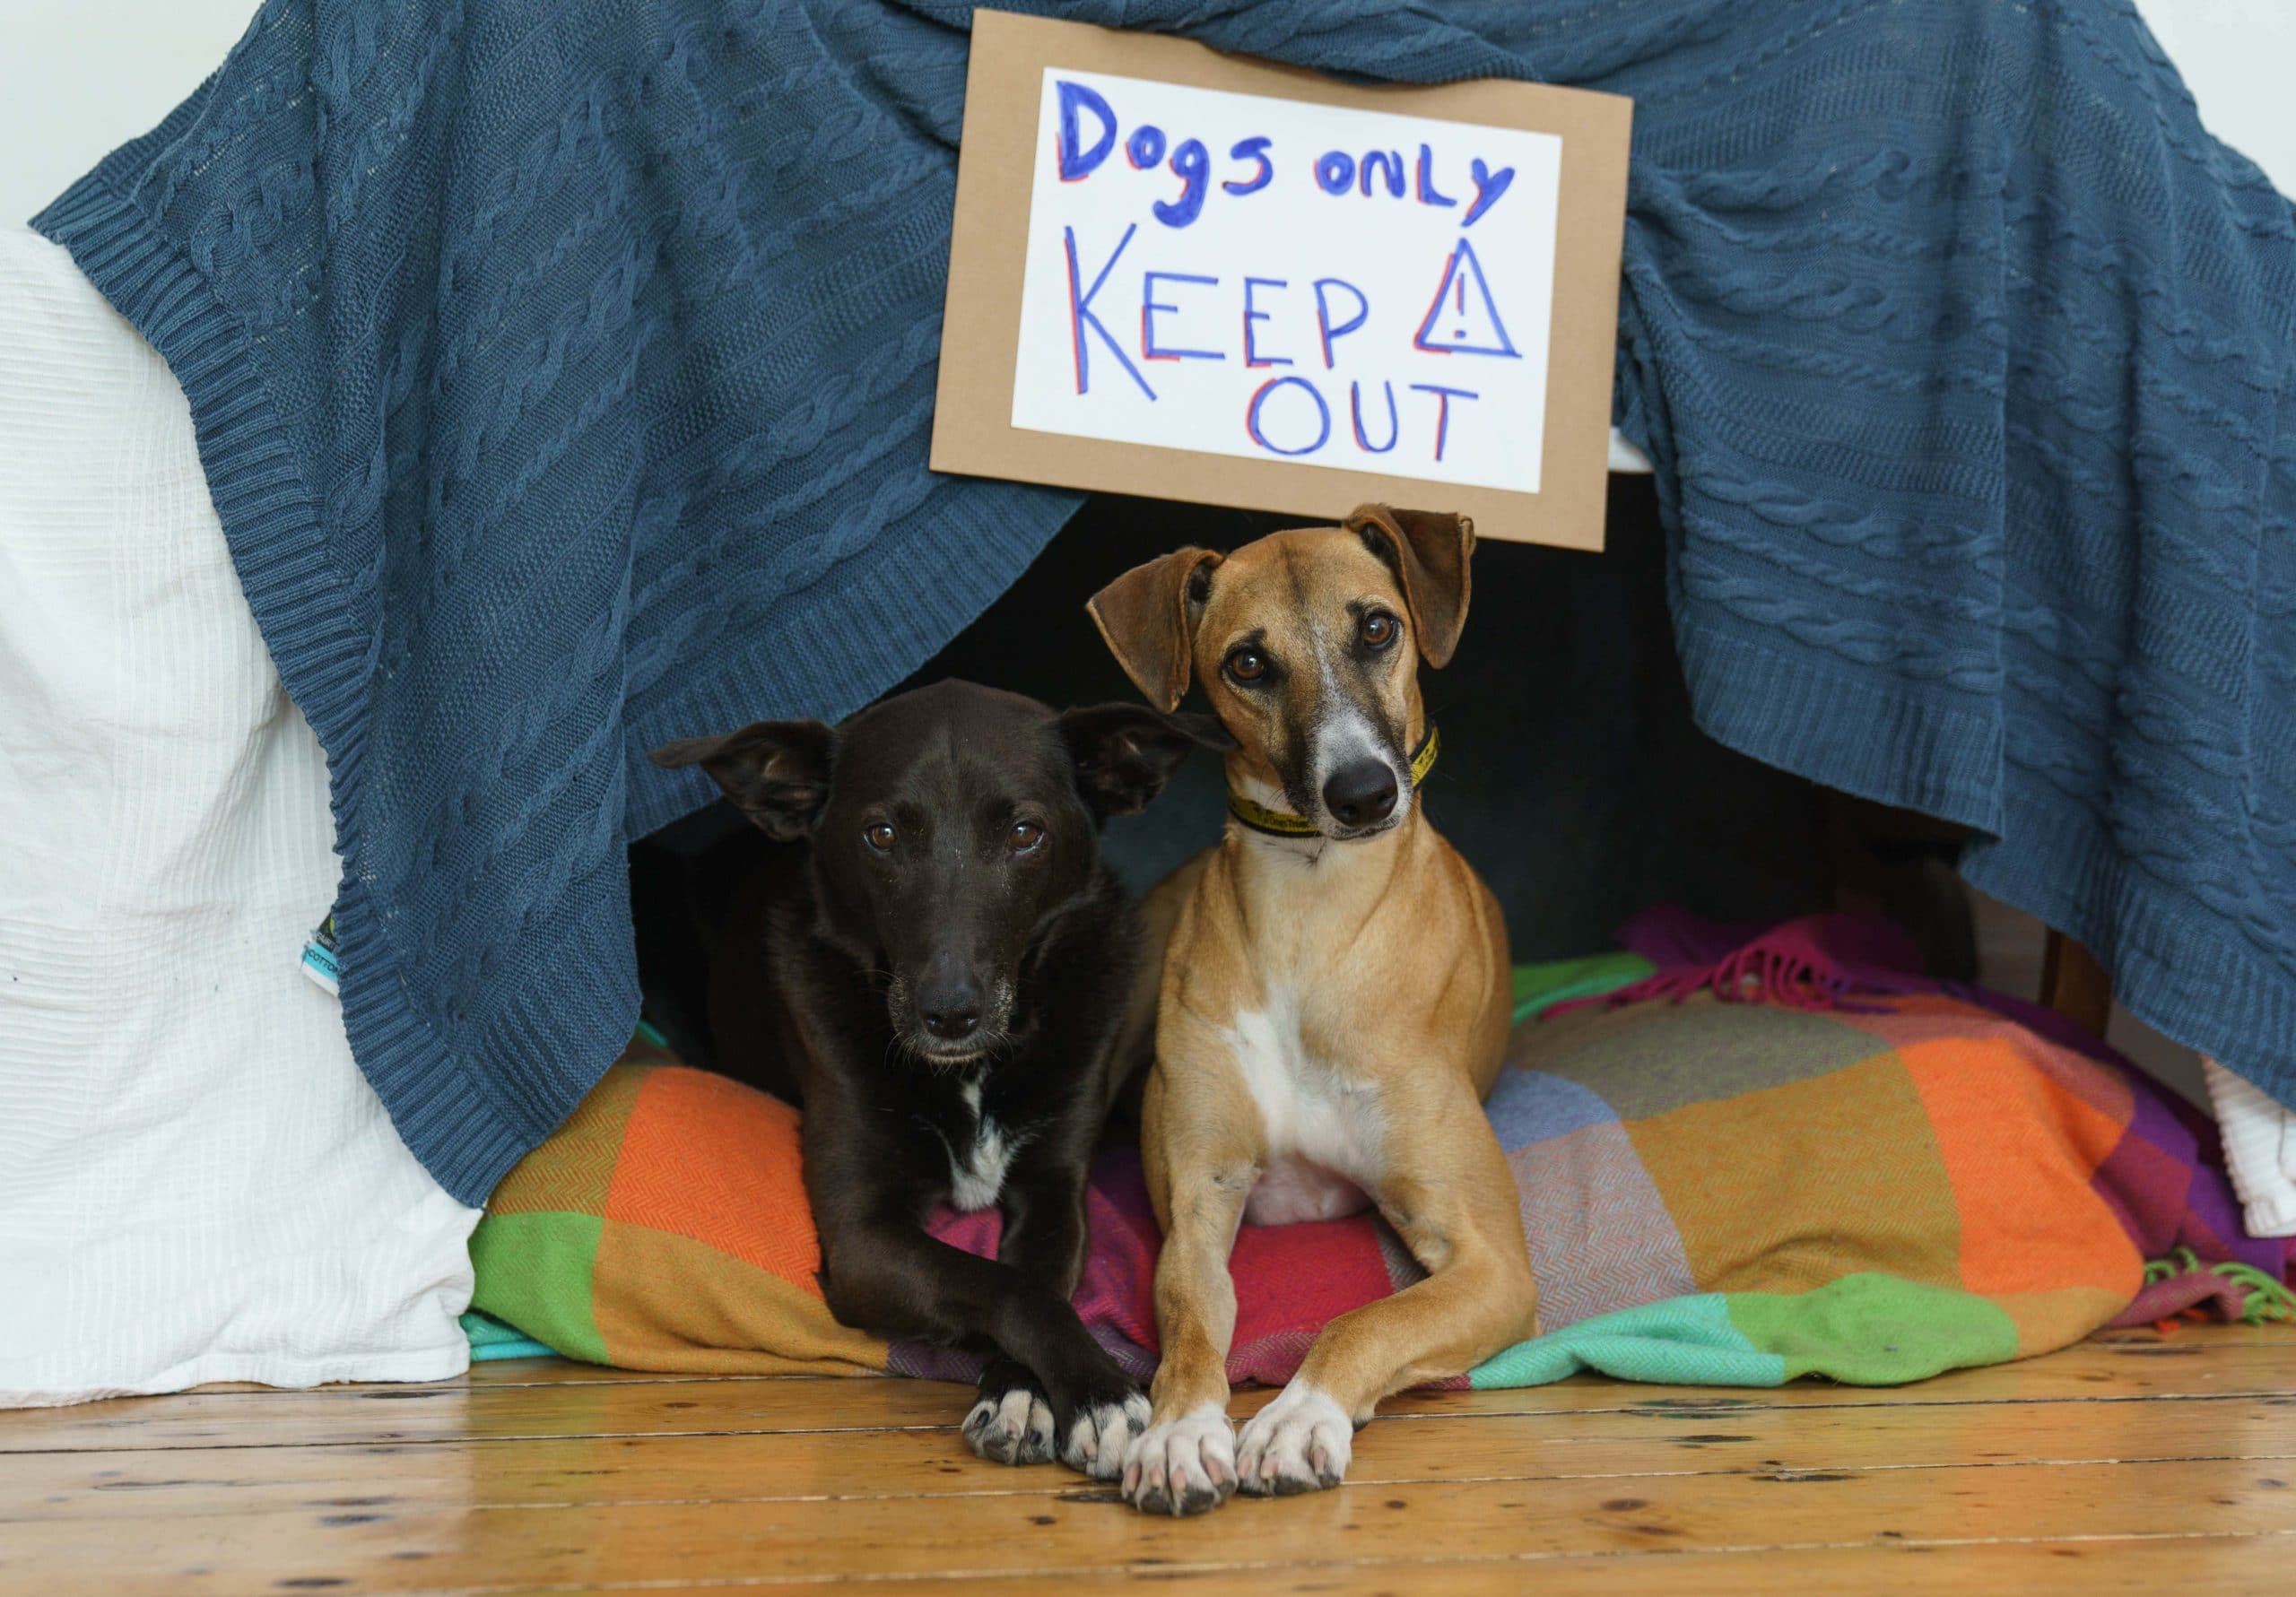 Respect your pet's space and 'let sleeping dogs lie'